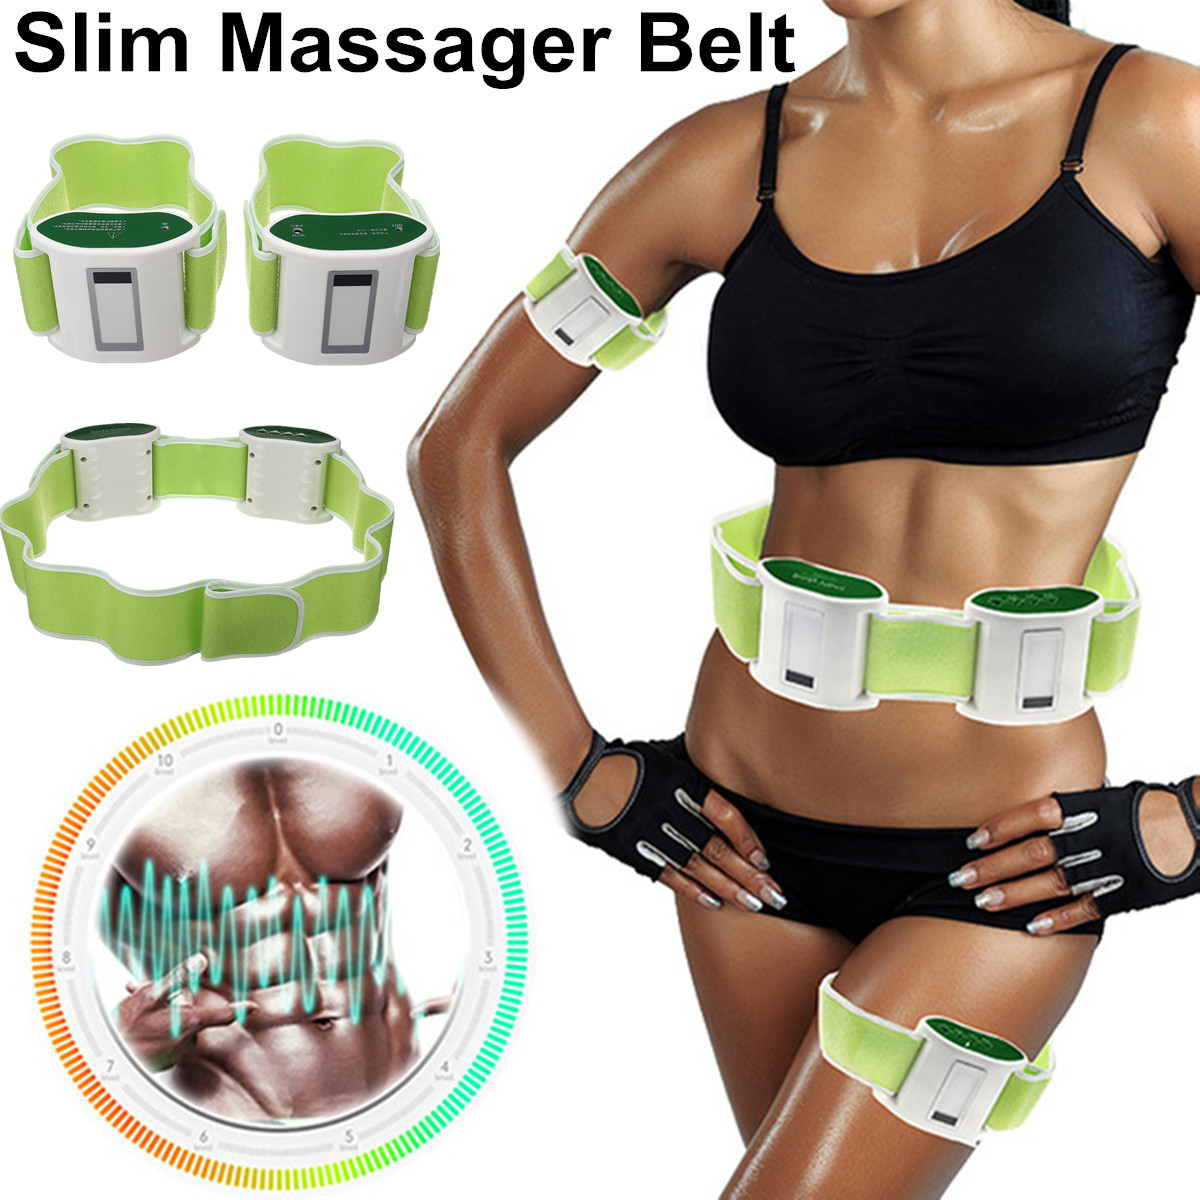 Thin Waist Massager Slimming Belt Body Electric Vibrating Sculpting Fat Burning ABS Fitness Detoxification Adjustment Compact 2015 redutores de medidas tv with the genuine chen tan teacher relief oil thin body fat doctor lotus leaf tea seven waist soup